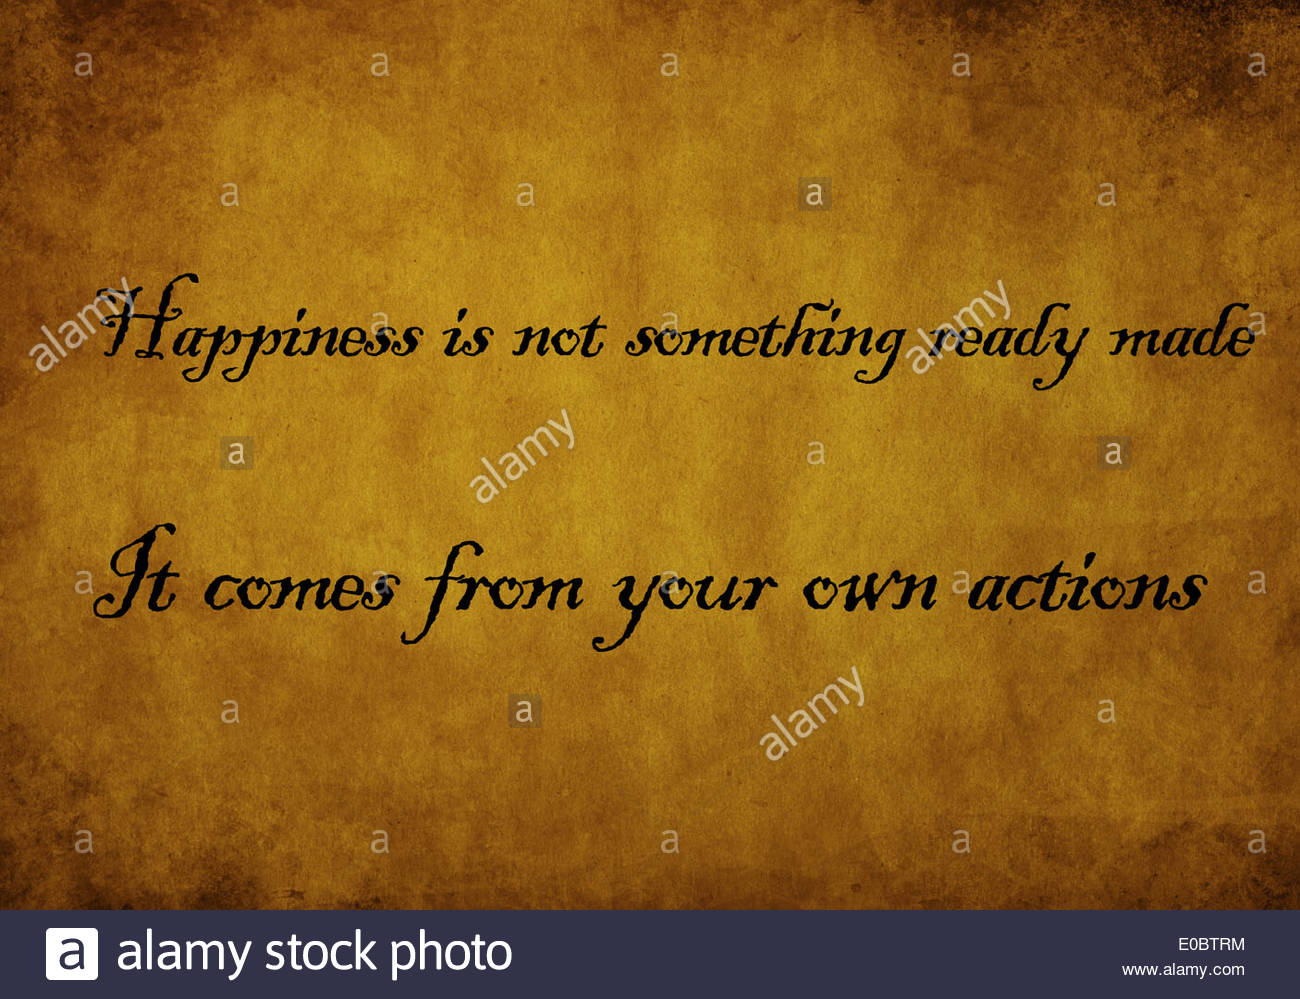 Inspiration and Motivating quote from Dalai Lama - Stock Image